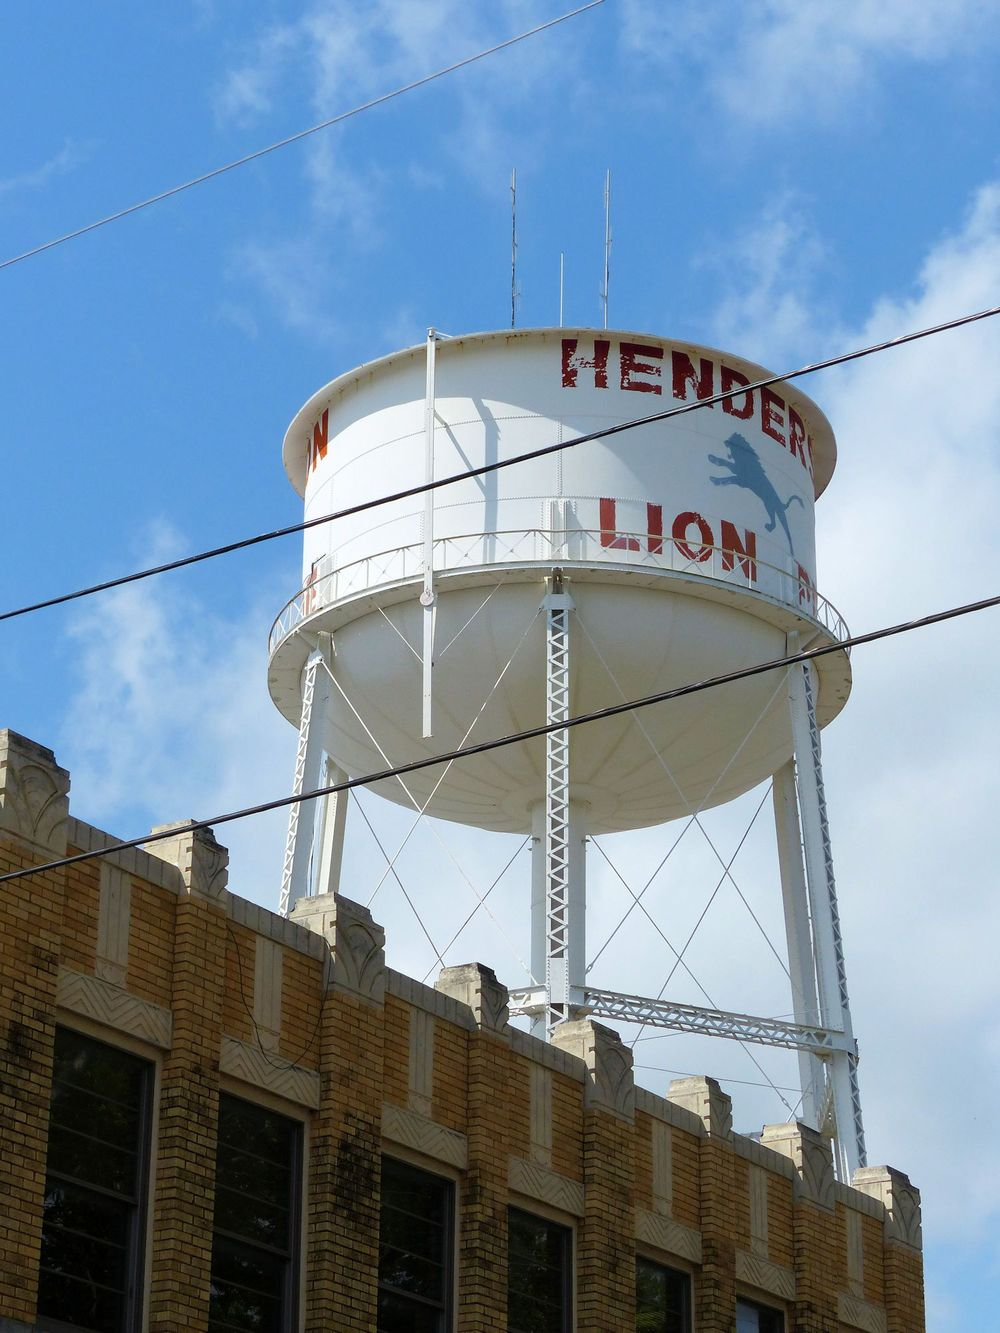 Henderson water tower